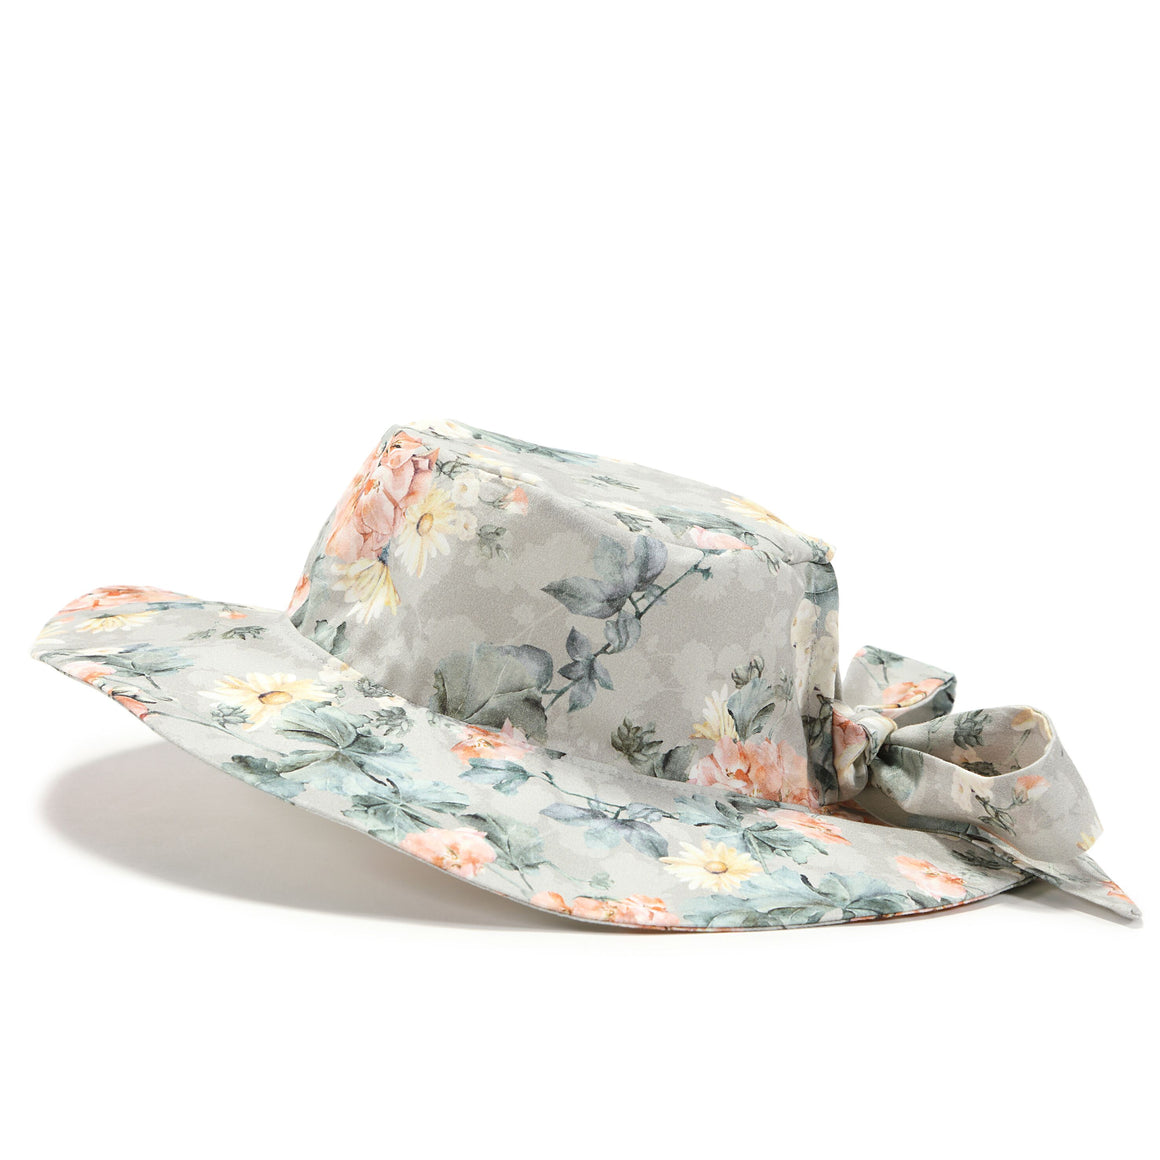 Sun hat for girls and babies with a floral print